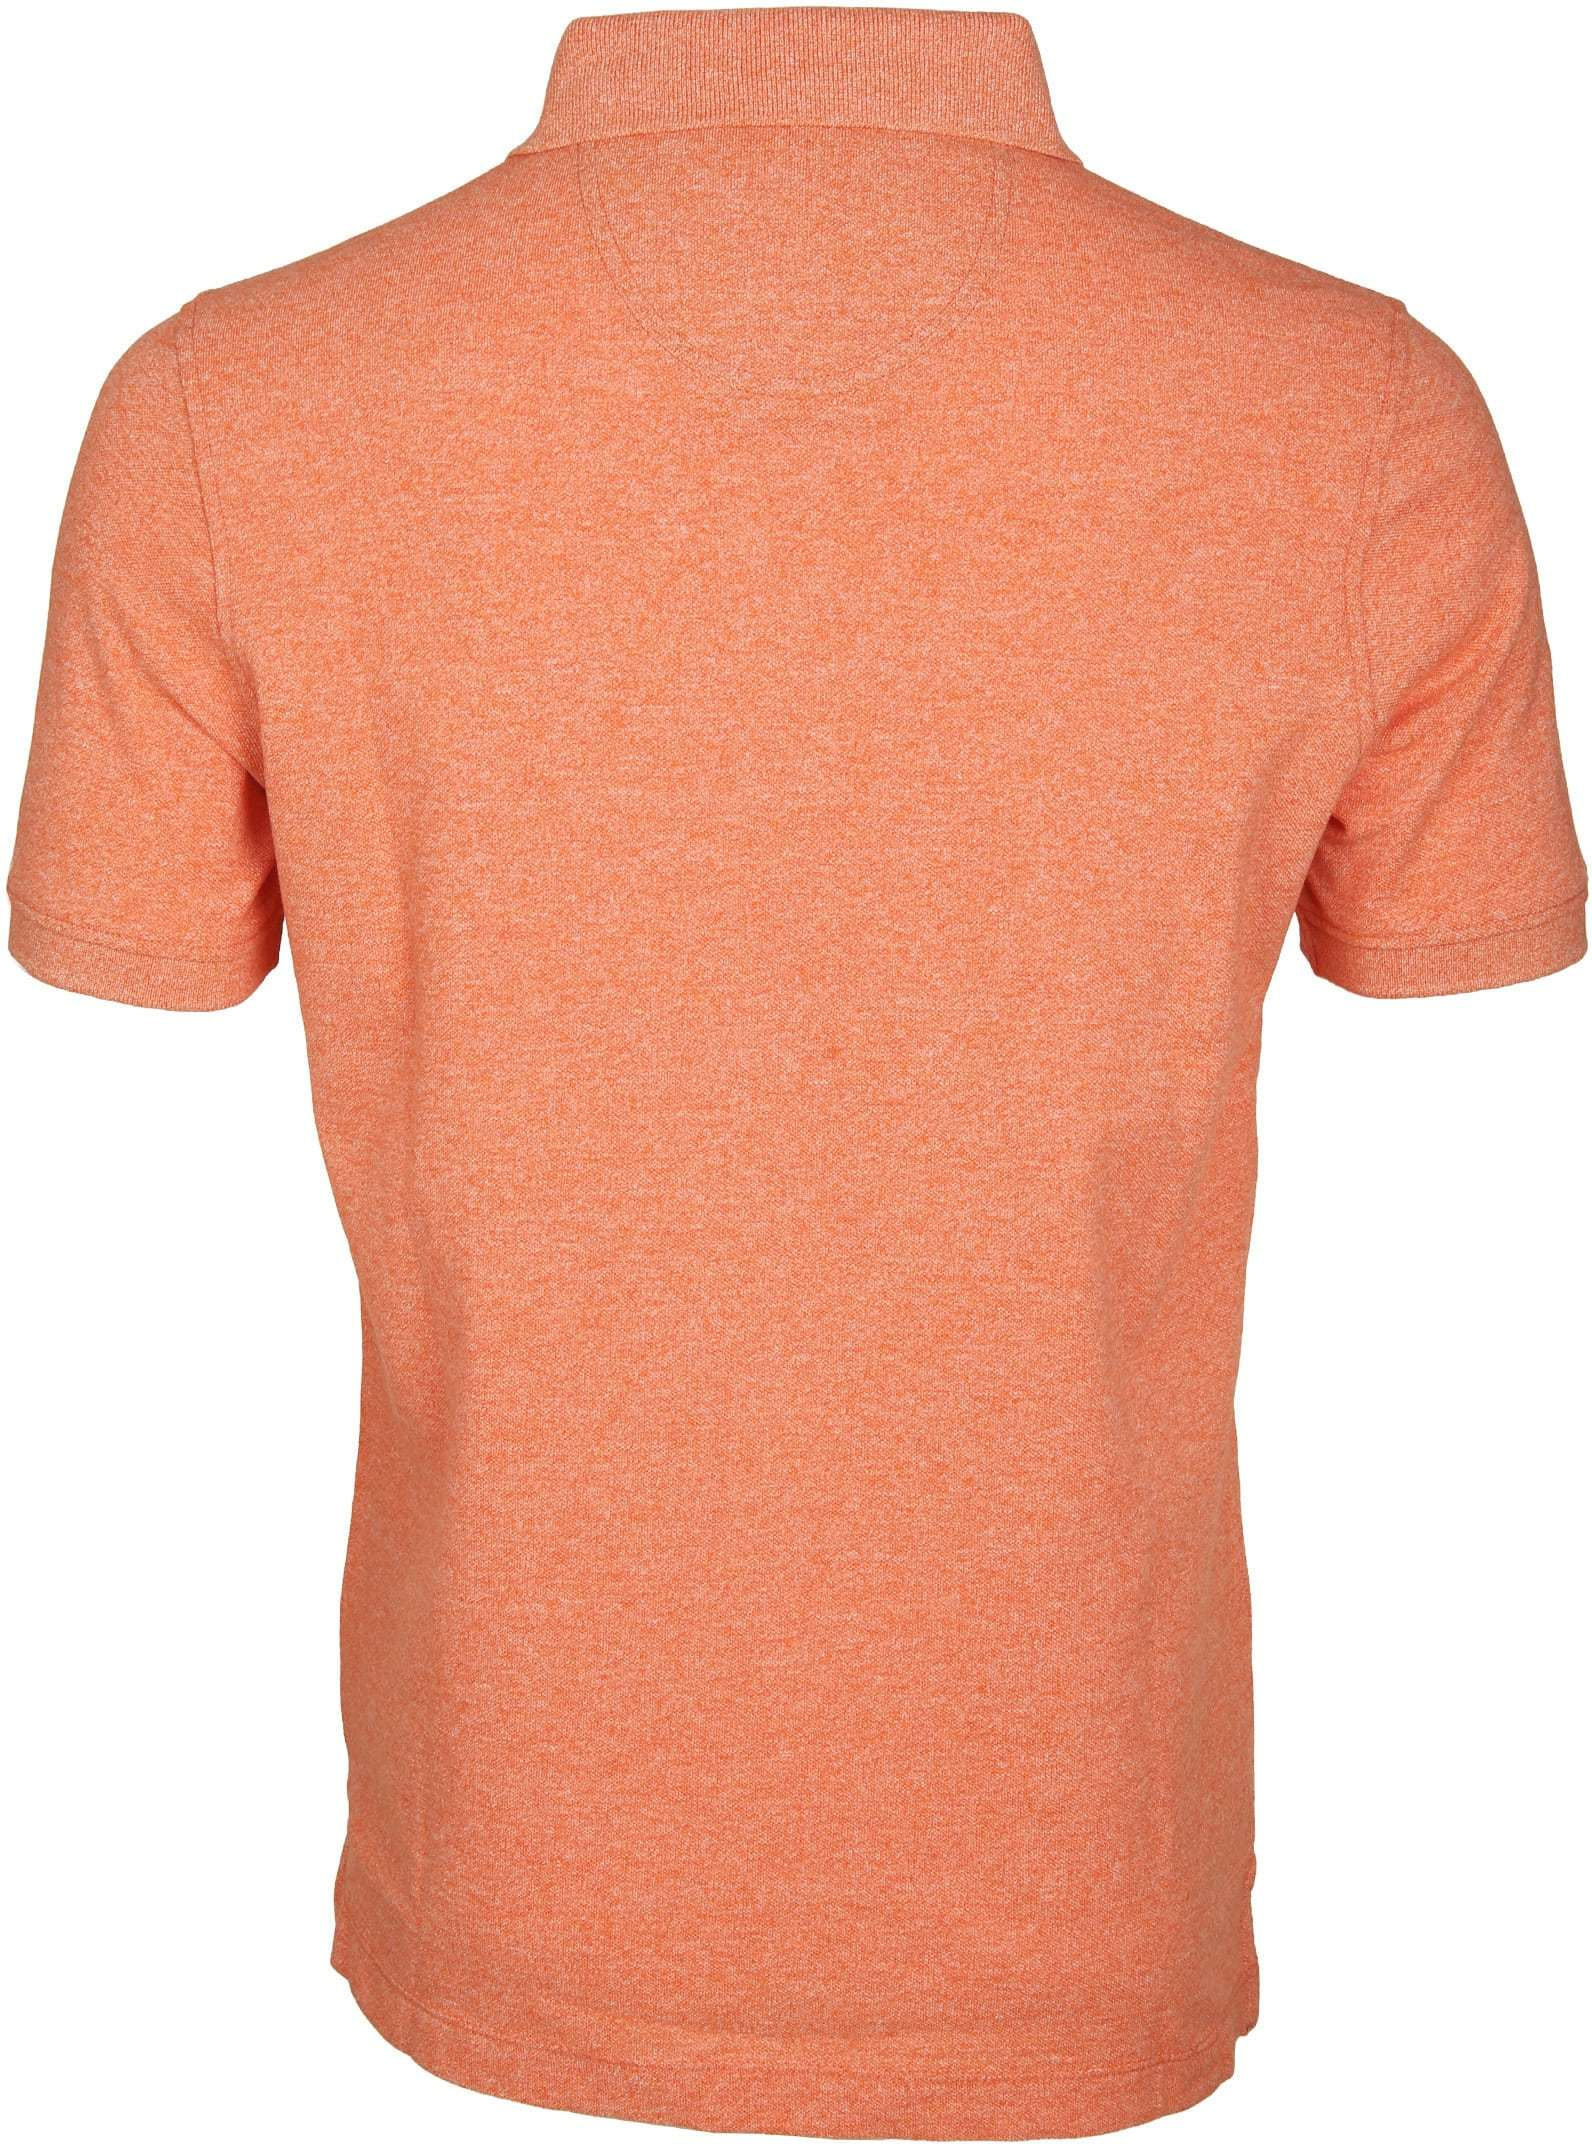 Suitable Poloshirt Jaspe Orange foto 3